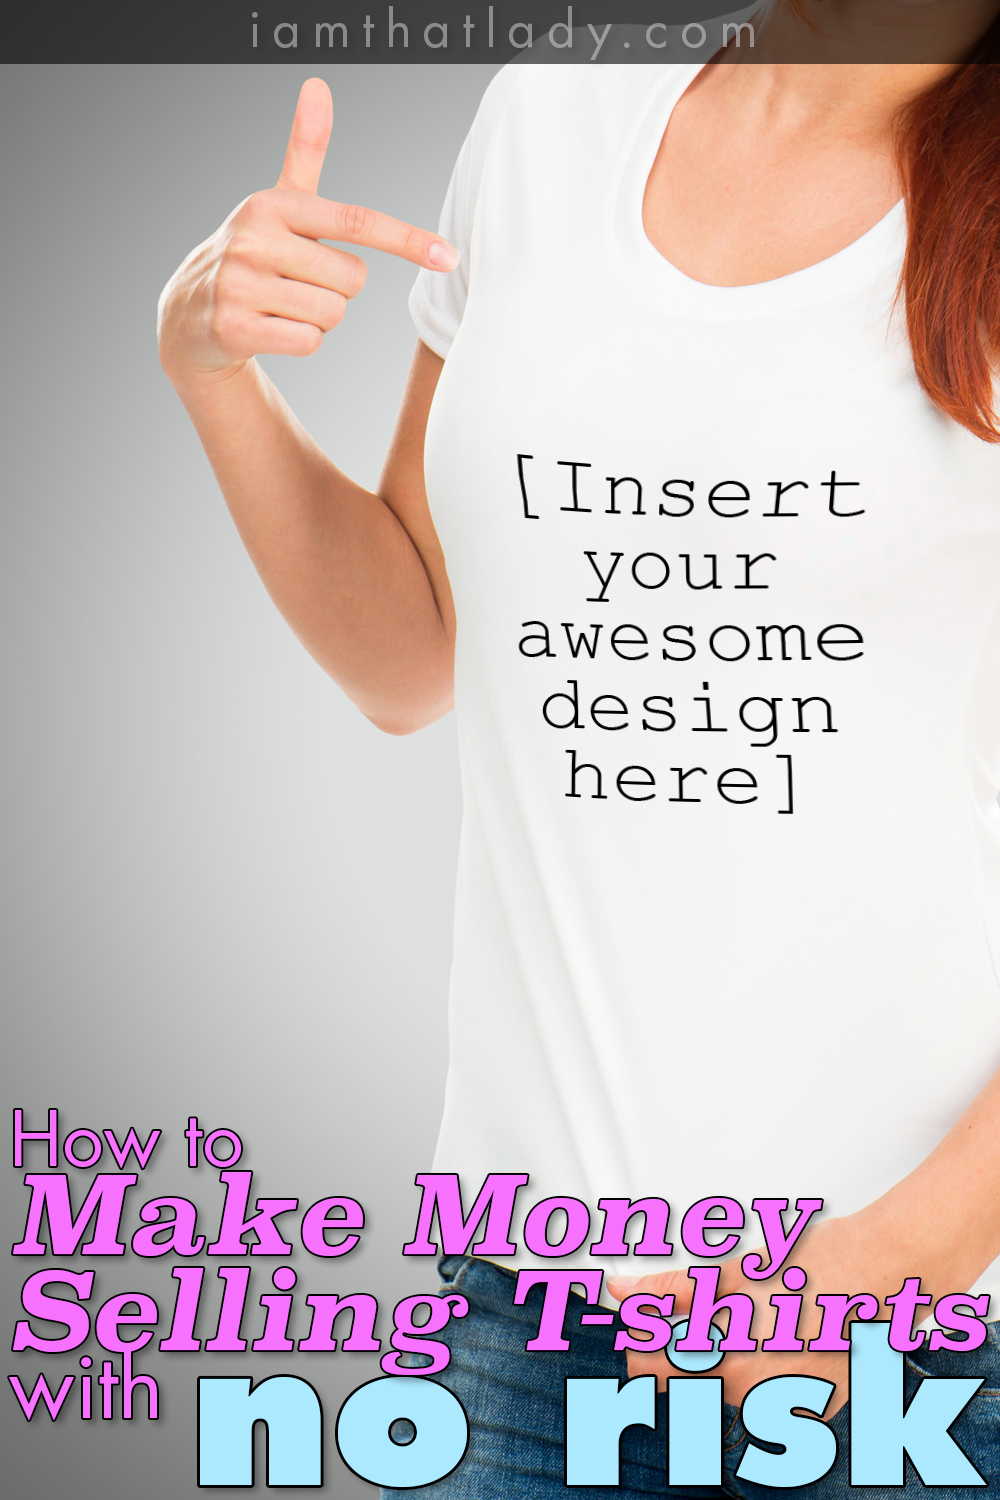 make money selling t shirts with no risk lauren greutman. Black Bedroom Furniture Sets. Home Design Ideas